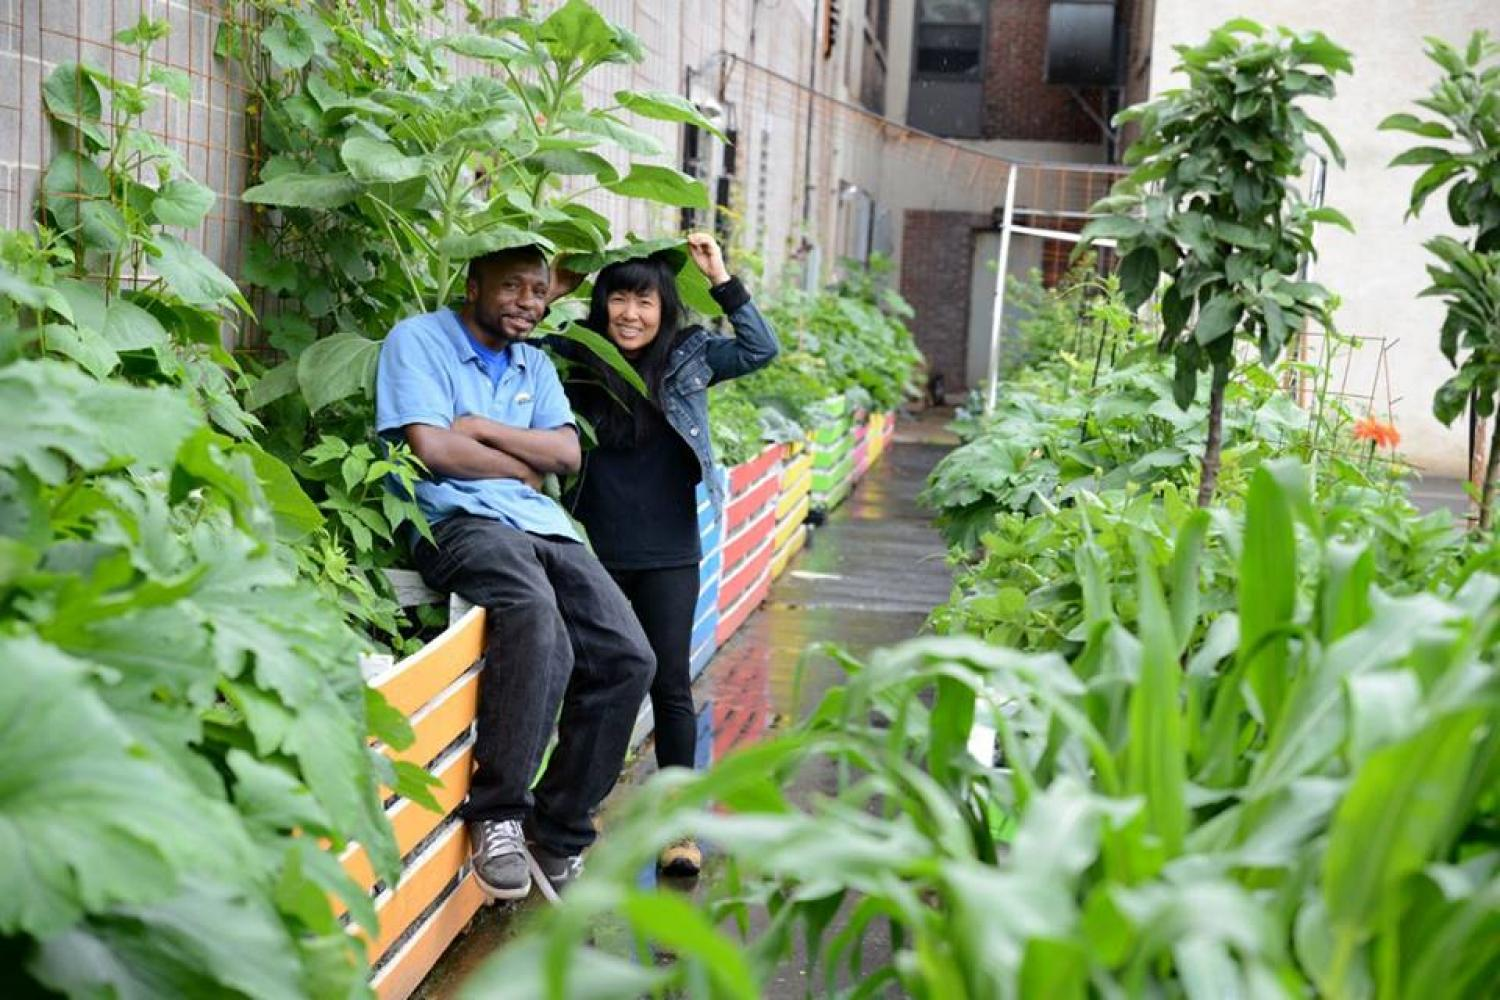 Grow Food, Meei Ling Ng, Sunday Breakfast Rescue Mission